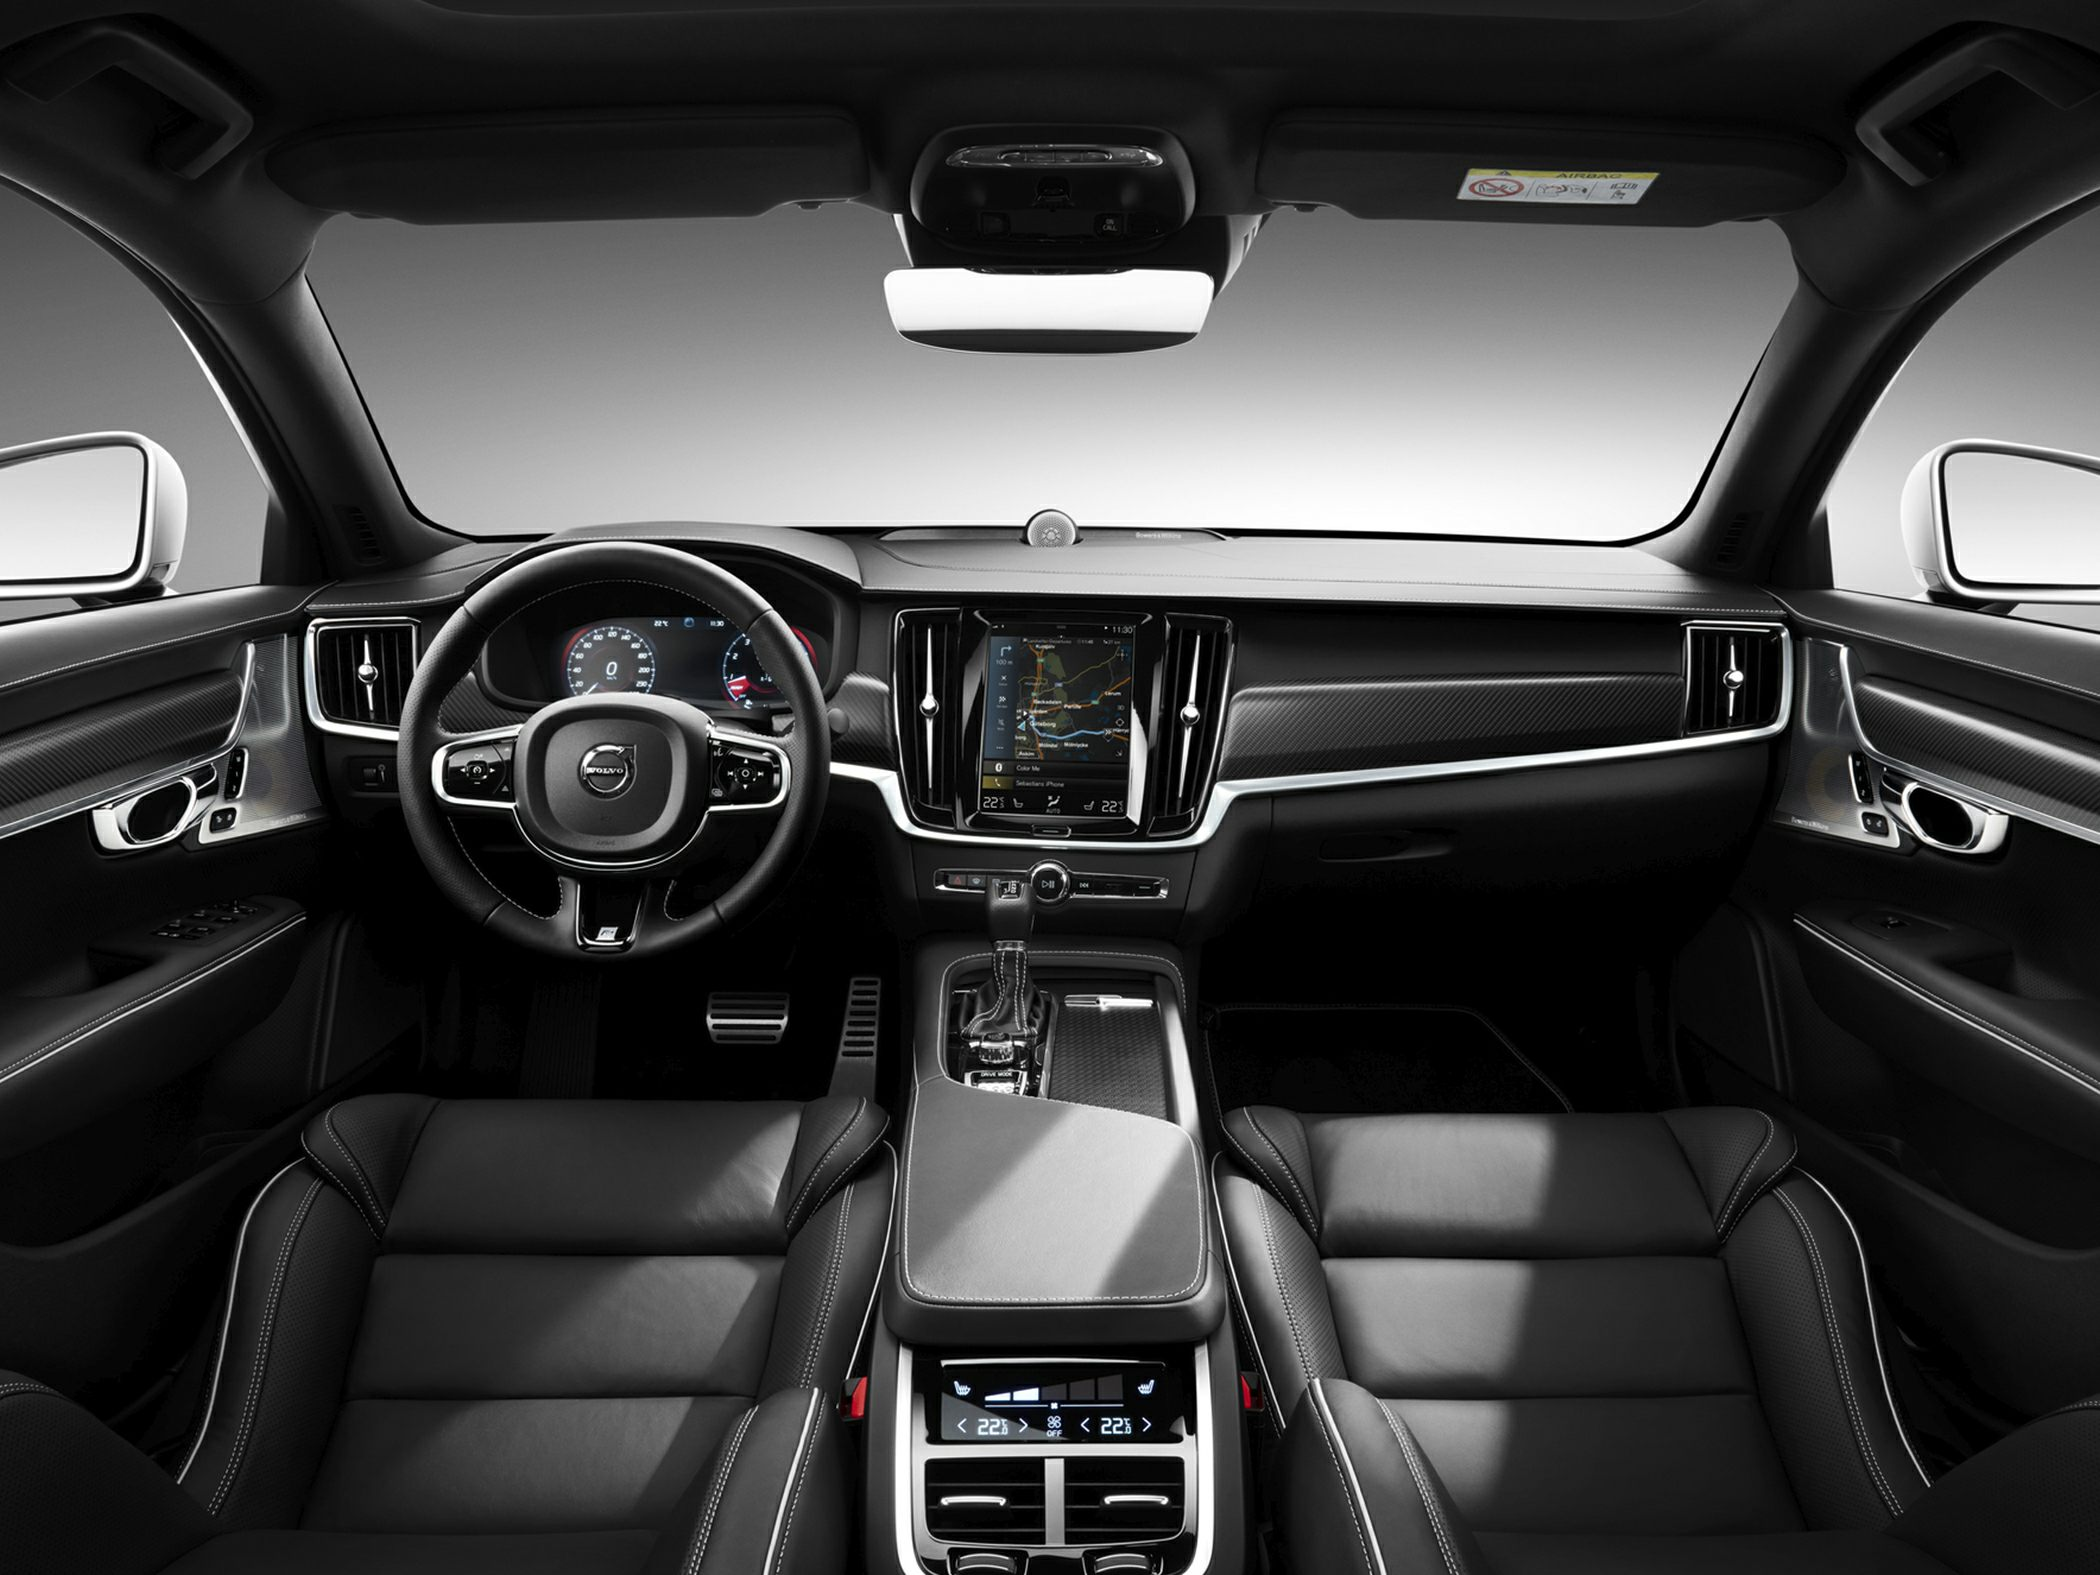 2018 Volvo V90 Pictures & Photos - CarsDirect